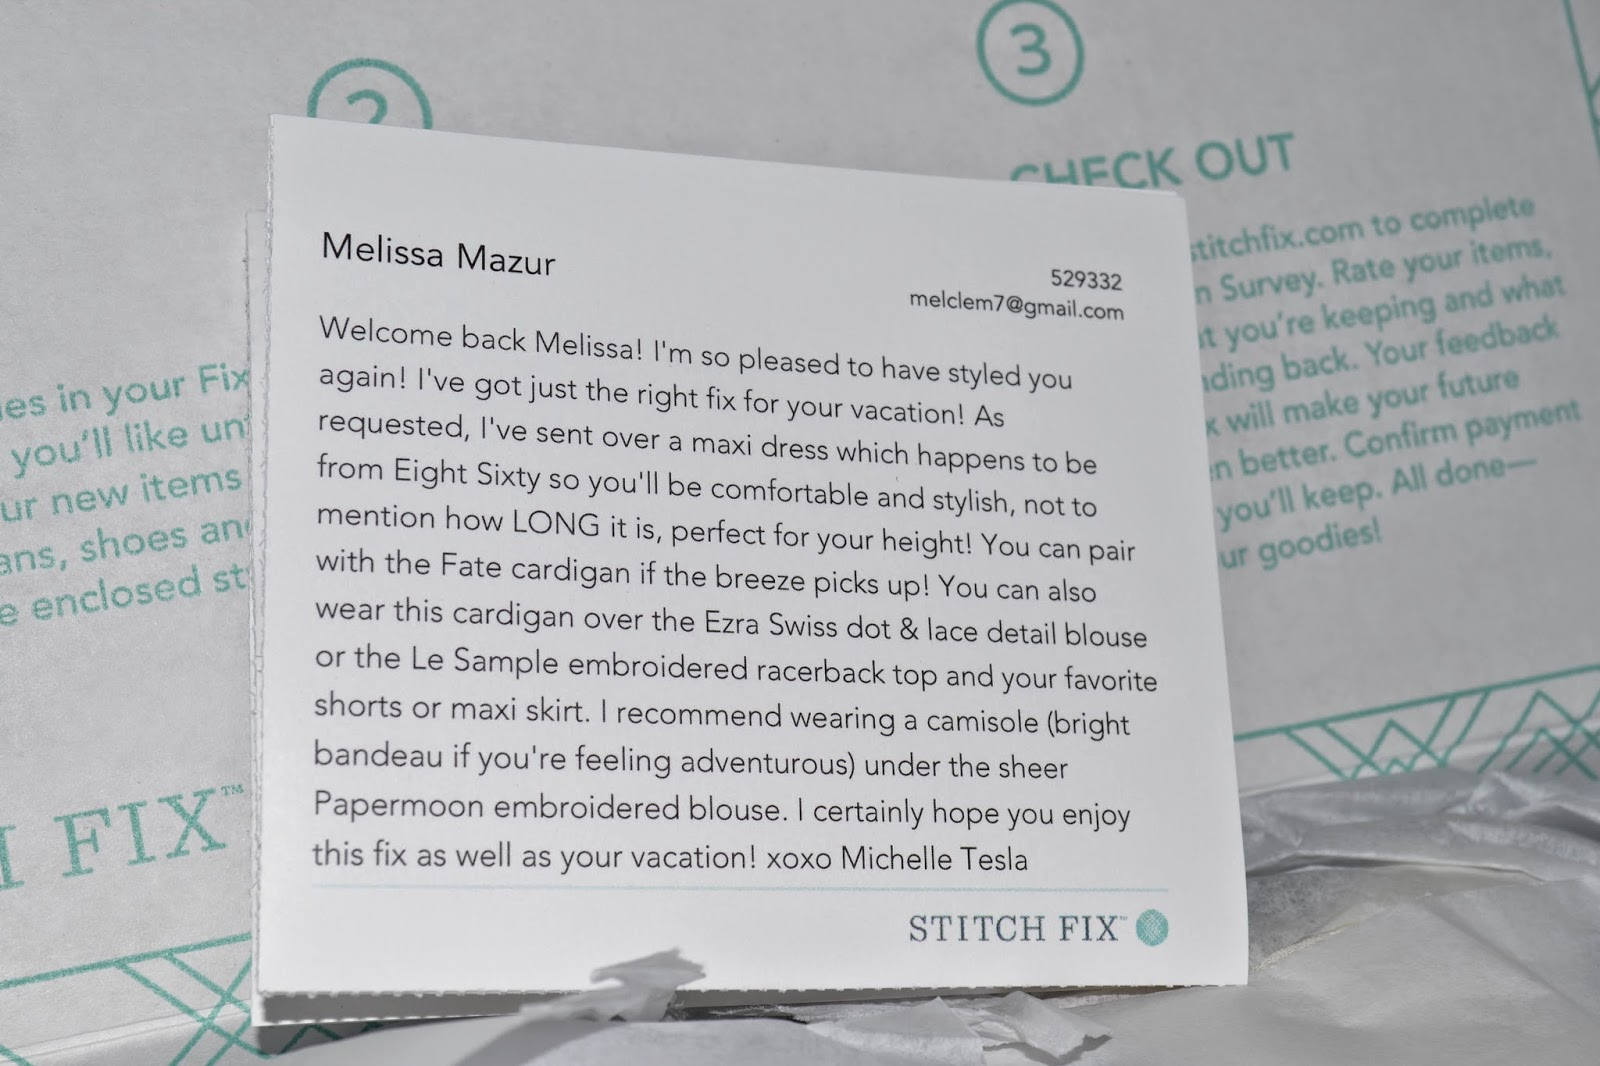 Stitch Fix 3  May 2014  Learning Lab Resources